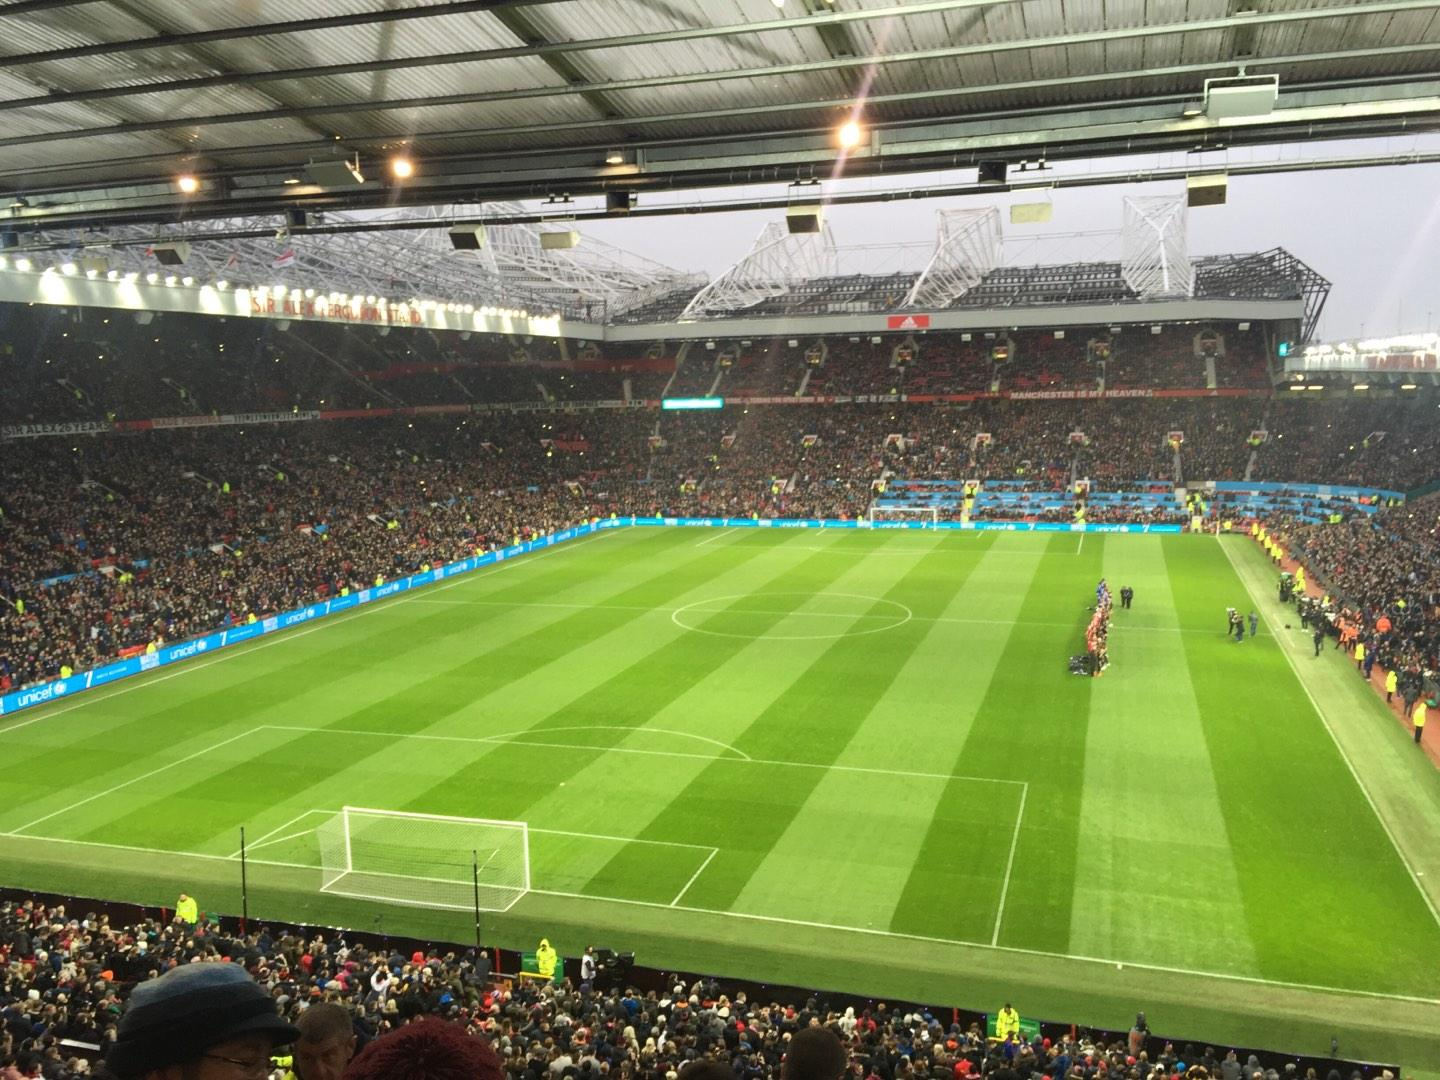 Old Trafford Section W3105 Row 6 Seat 41